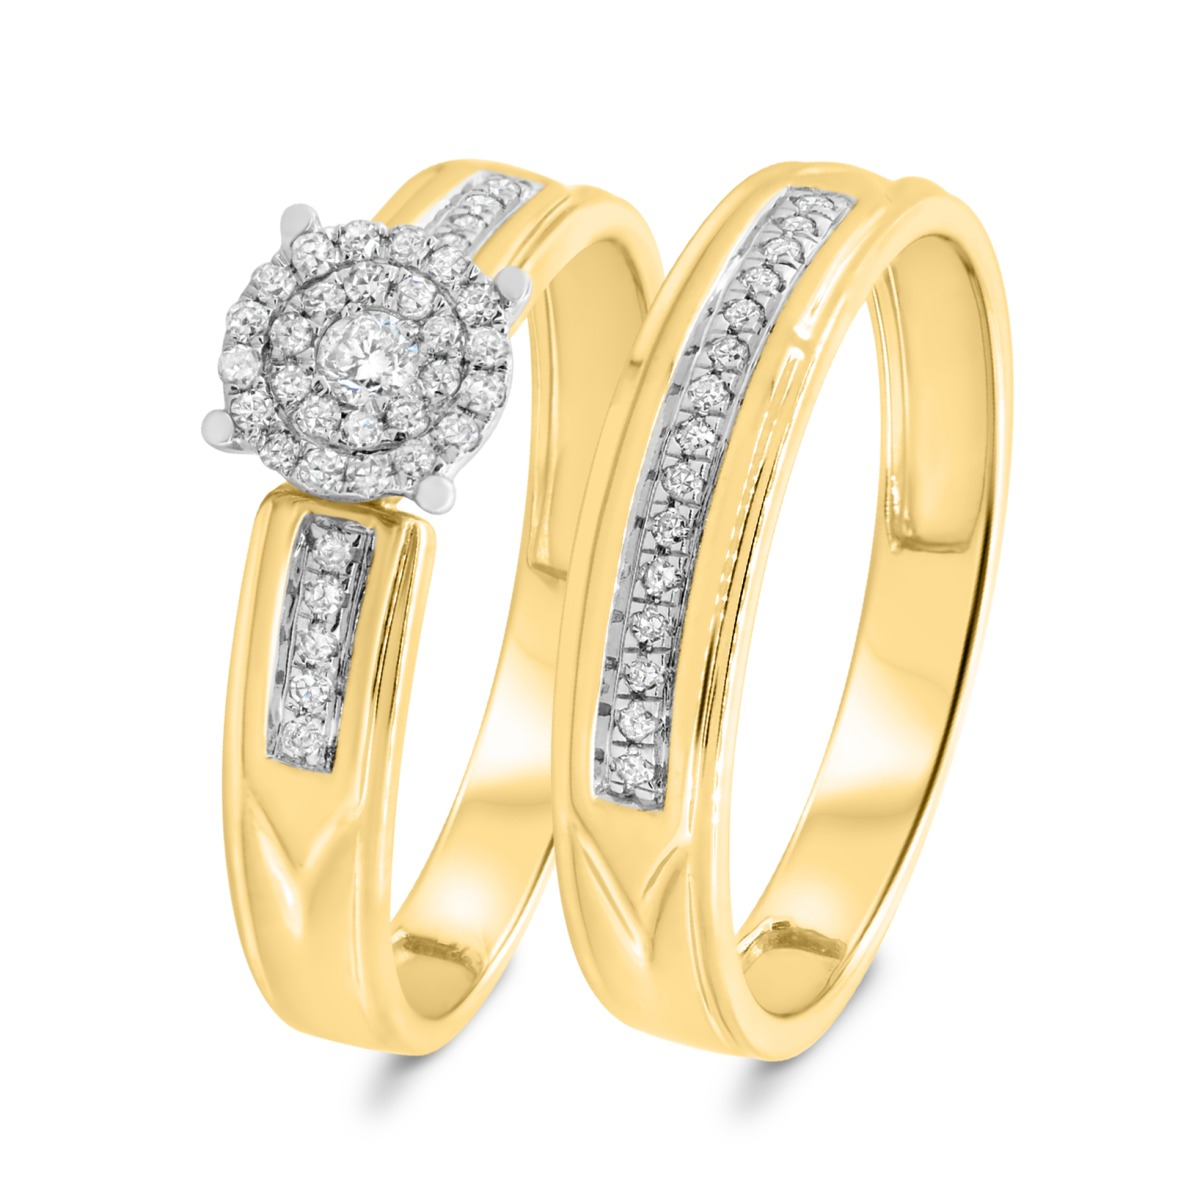 1/4 CT. T.W. Diamond Matching Bridal Ring Set 10K Yellow Gold